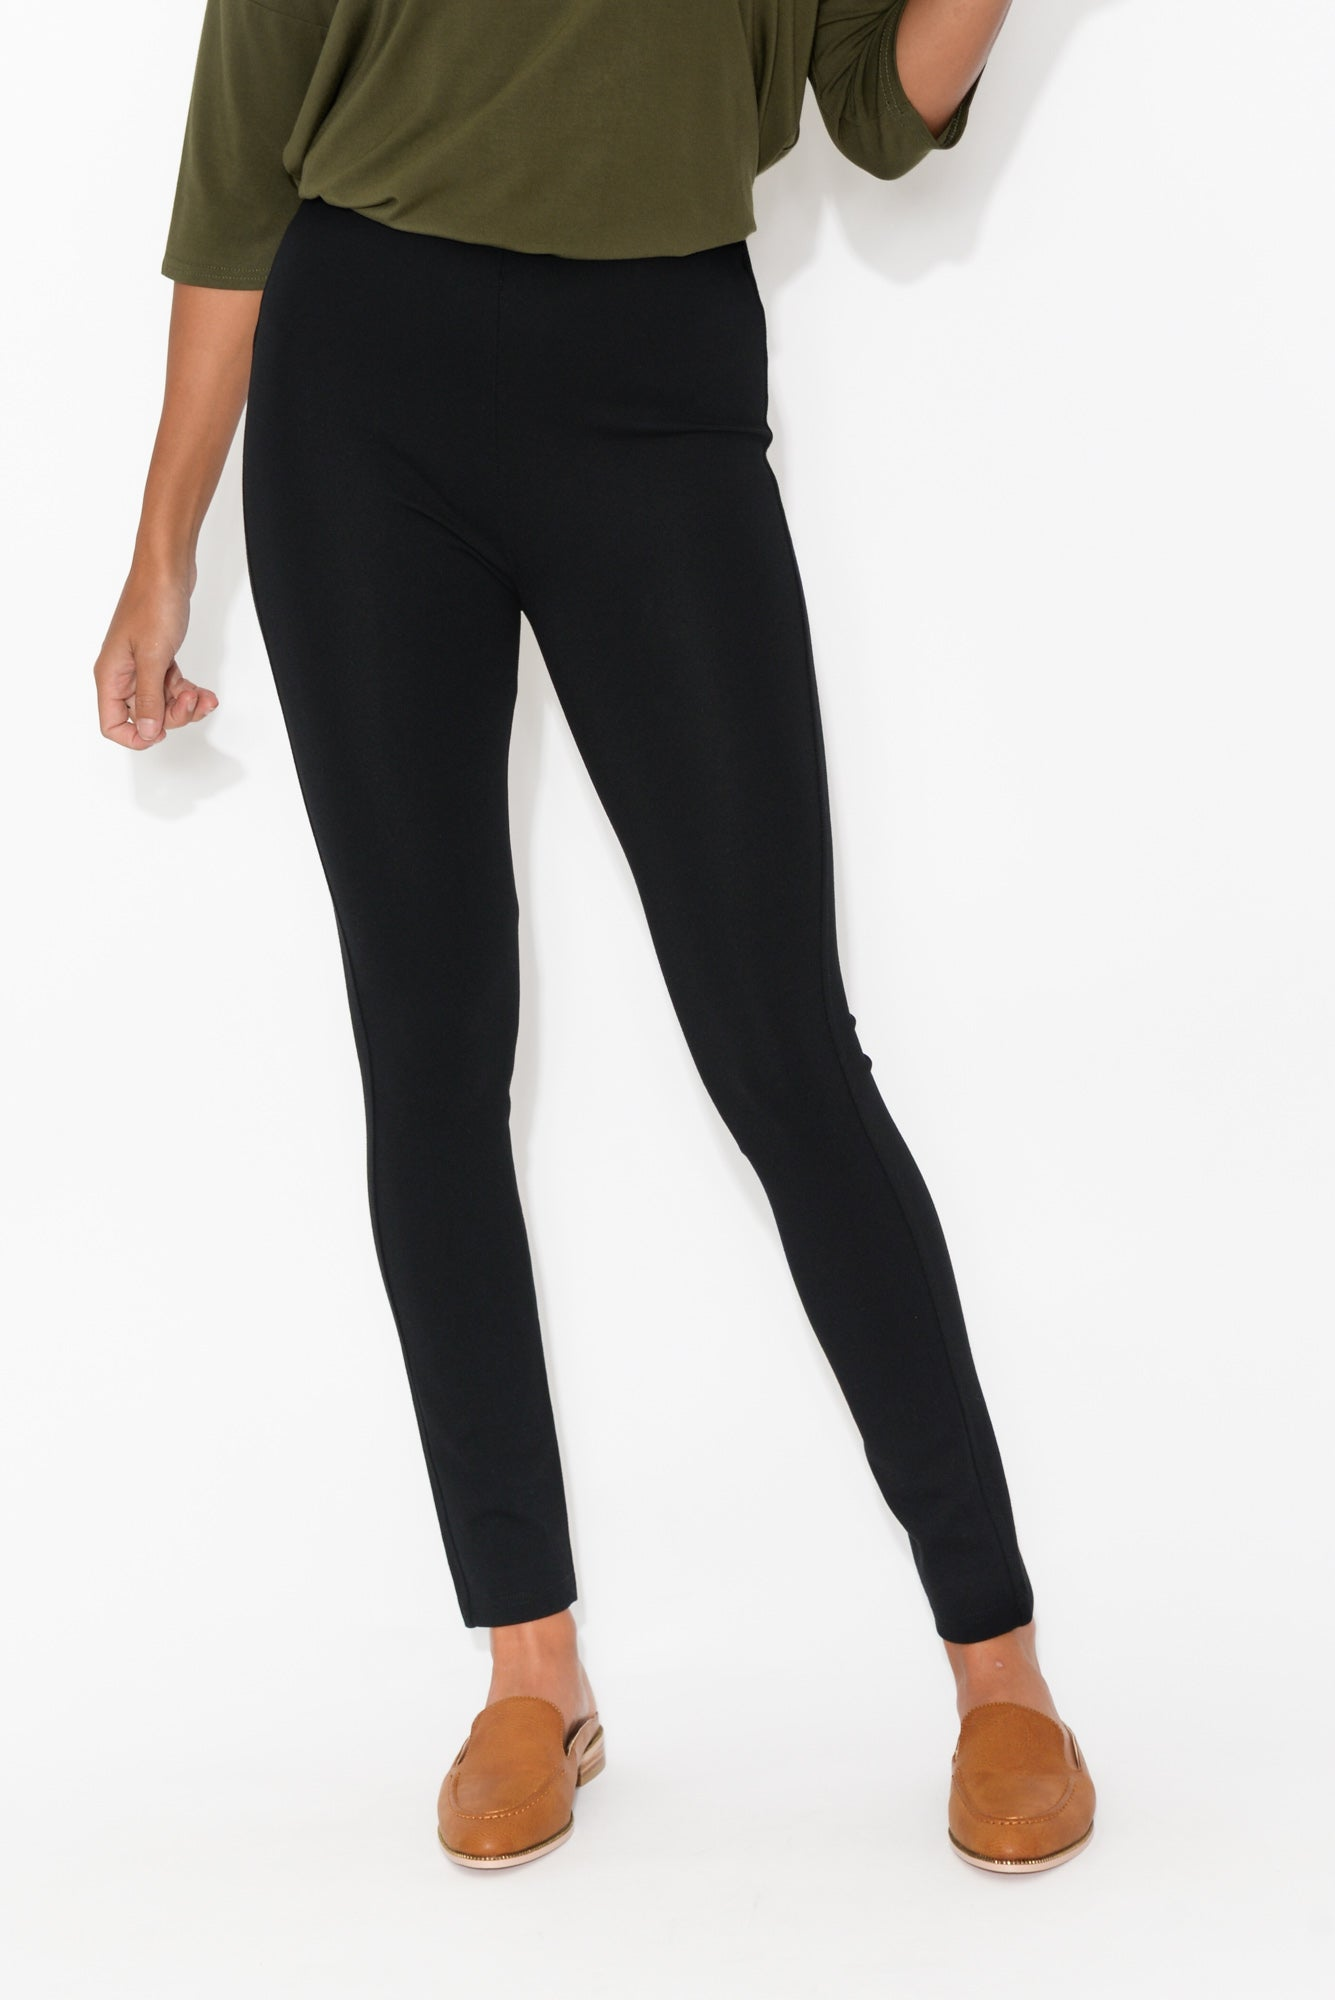 Yvonne Black Winter Pant